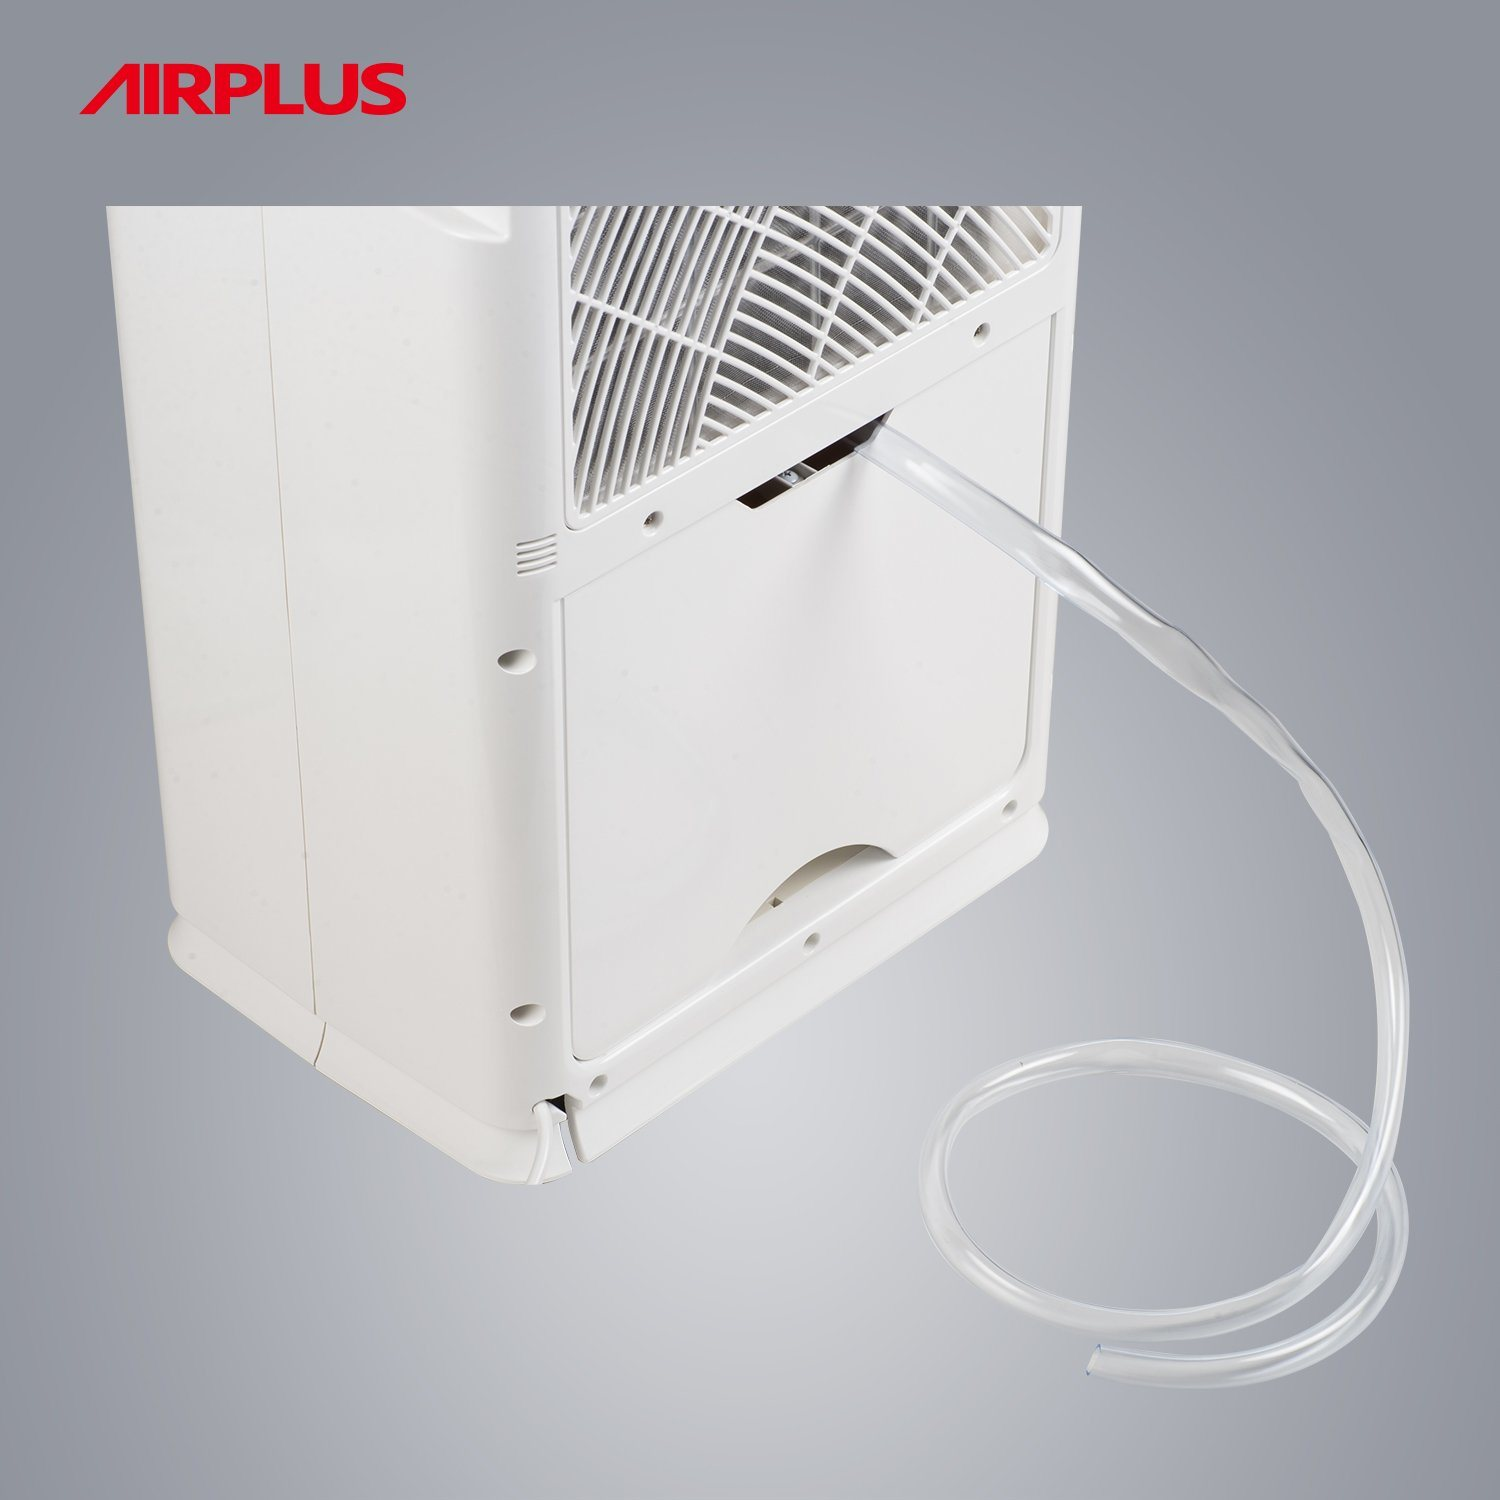 5.3L/Day Electronic Dehumidifier 290W with Ionizer (AP22-501EB)